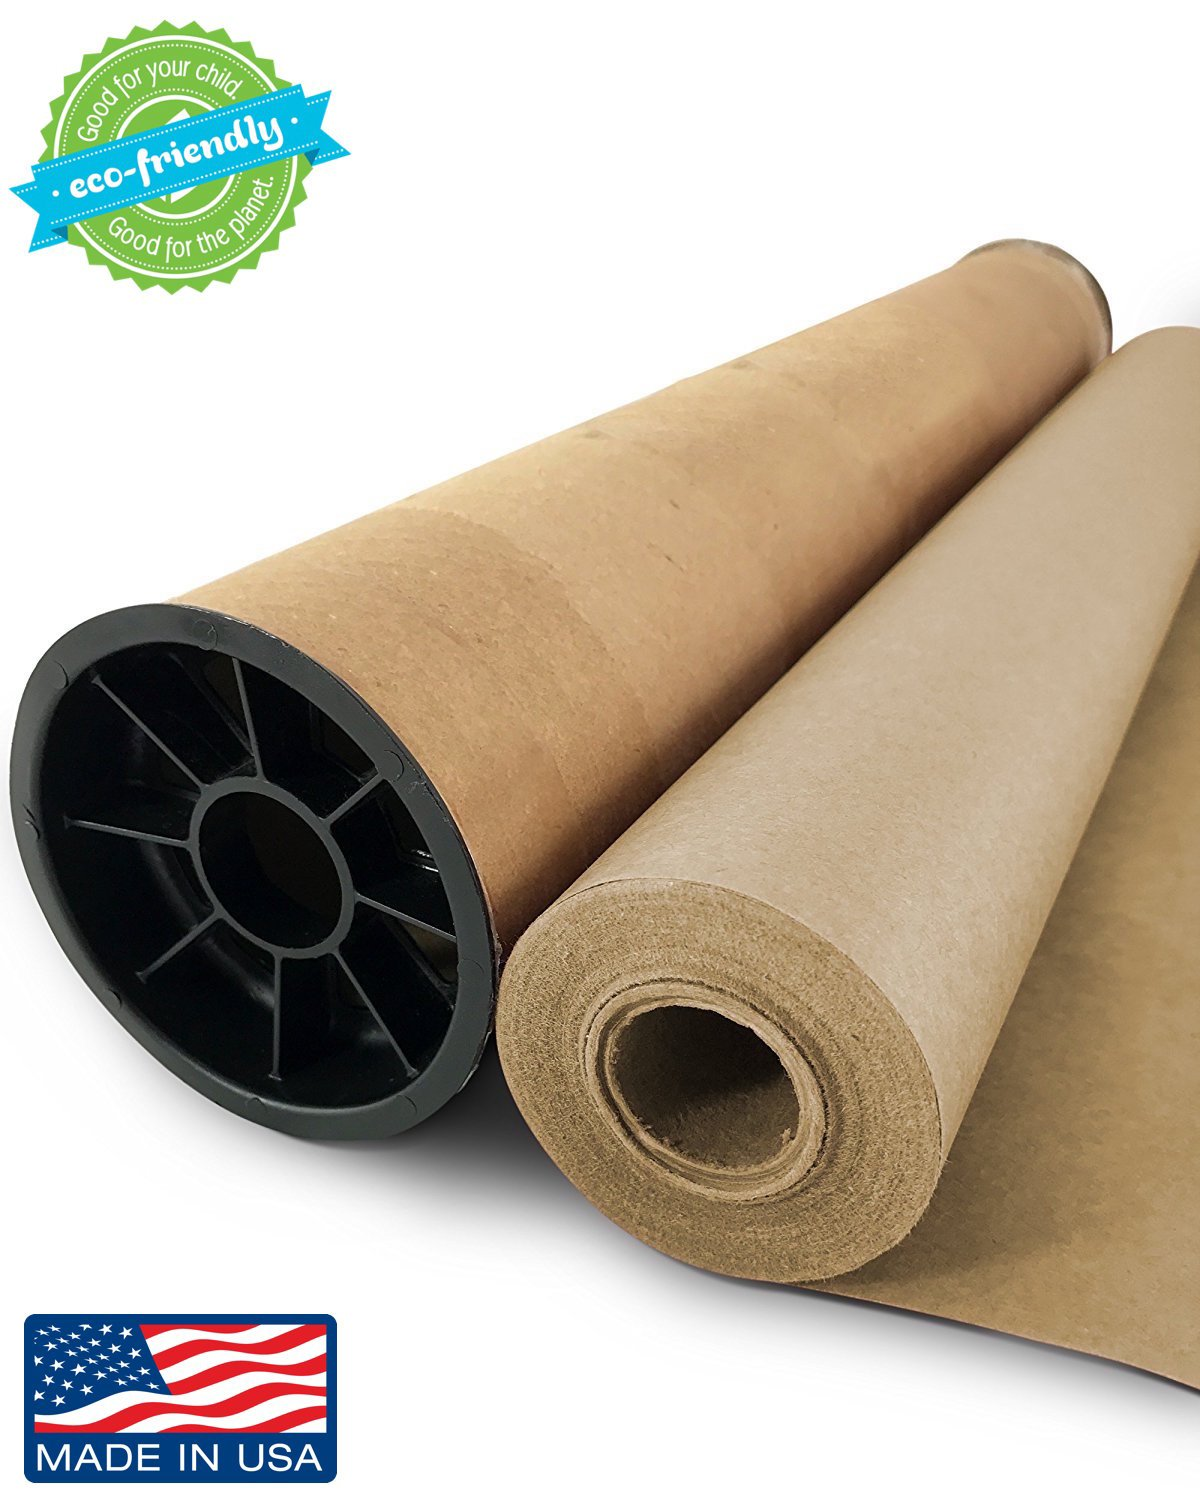 Brown Kraft Paper Jumbo Roll - 30'' x 1200'' (100ft) with Durable Carry Tube | Ideal for Gift Wrapping, Art, Craft, Postal, Packing, Shipping, Floor Covering, Dunnage, Parcel, Table Runner | Made in USA by Mighty Dreams